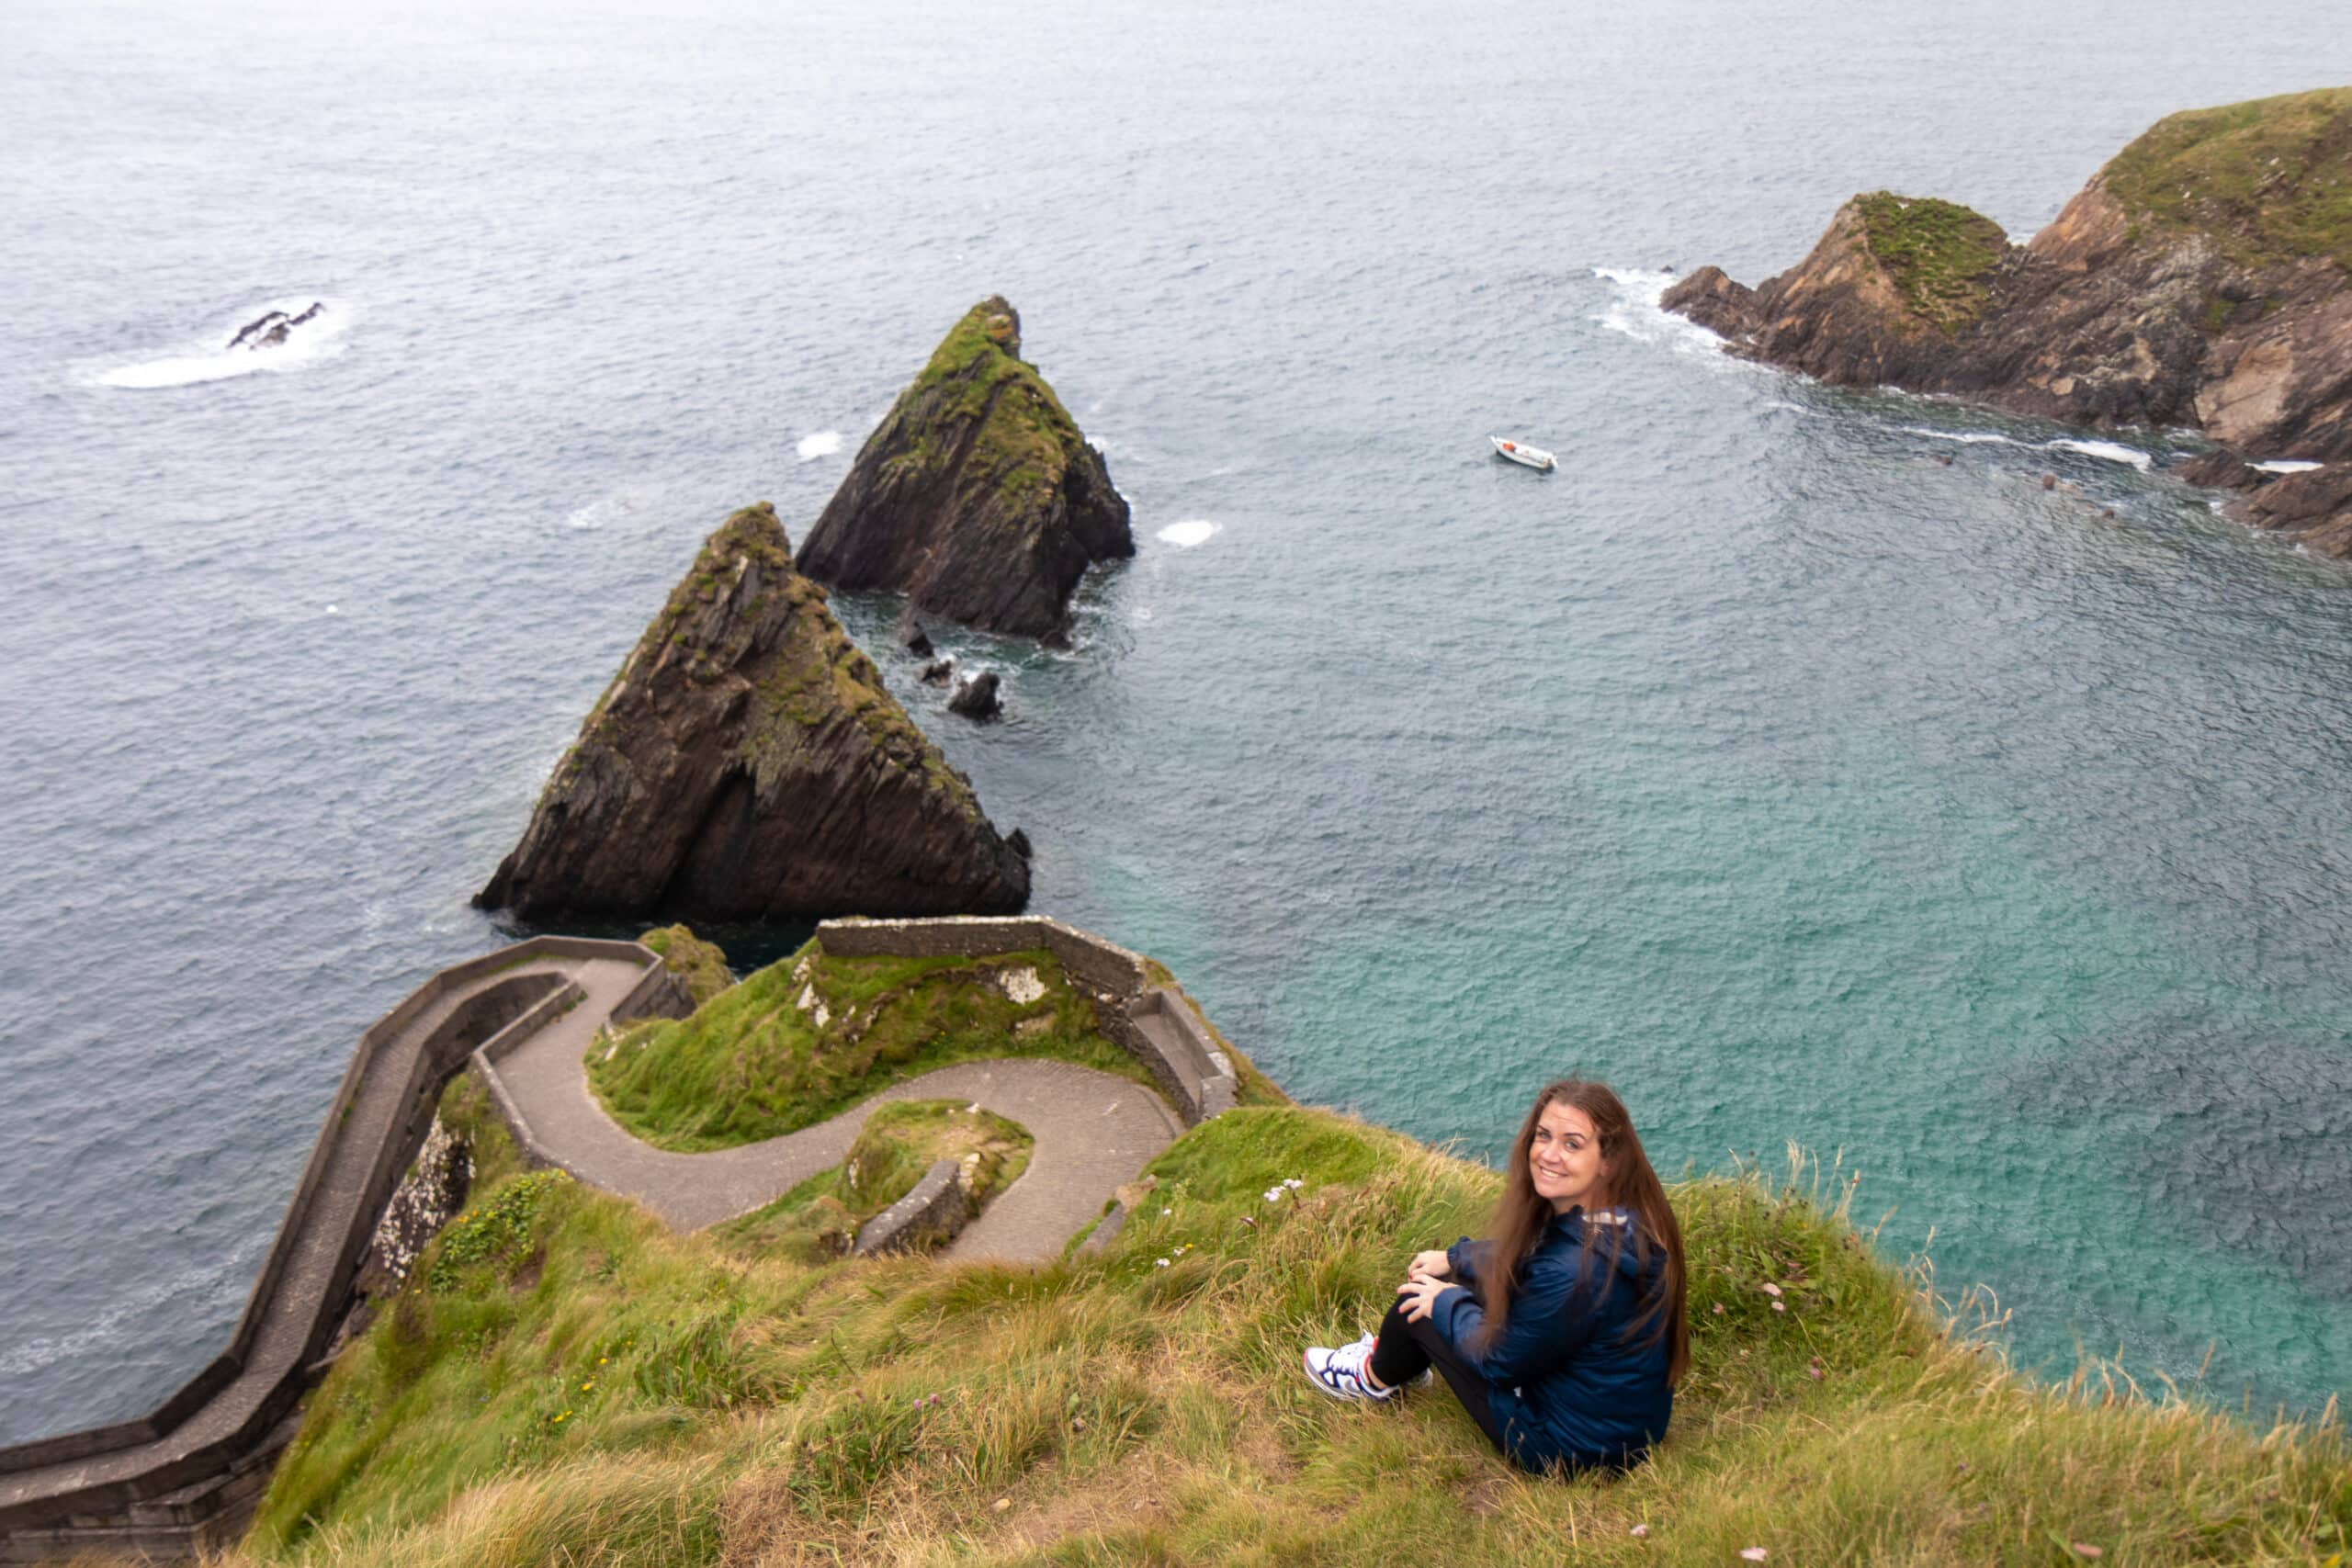 Melanie May Content Creator on a cliff by the sea in Ireland